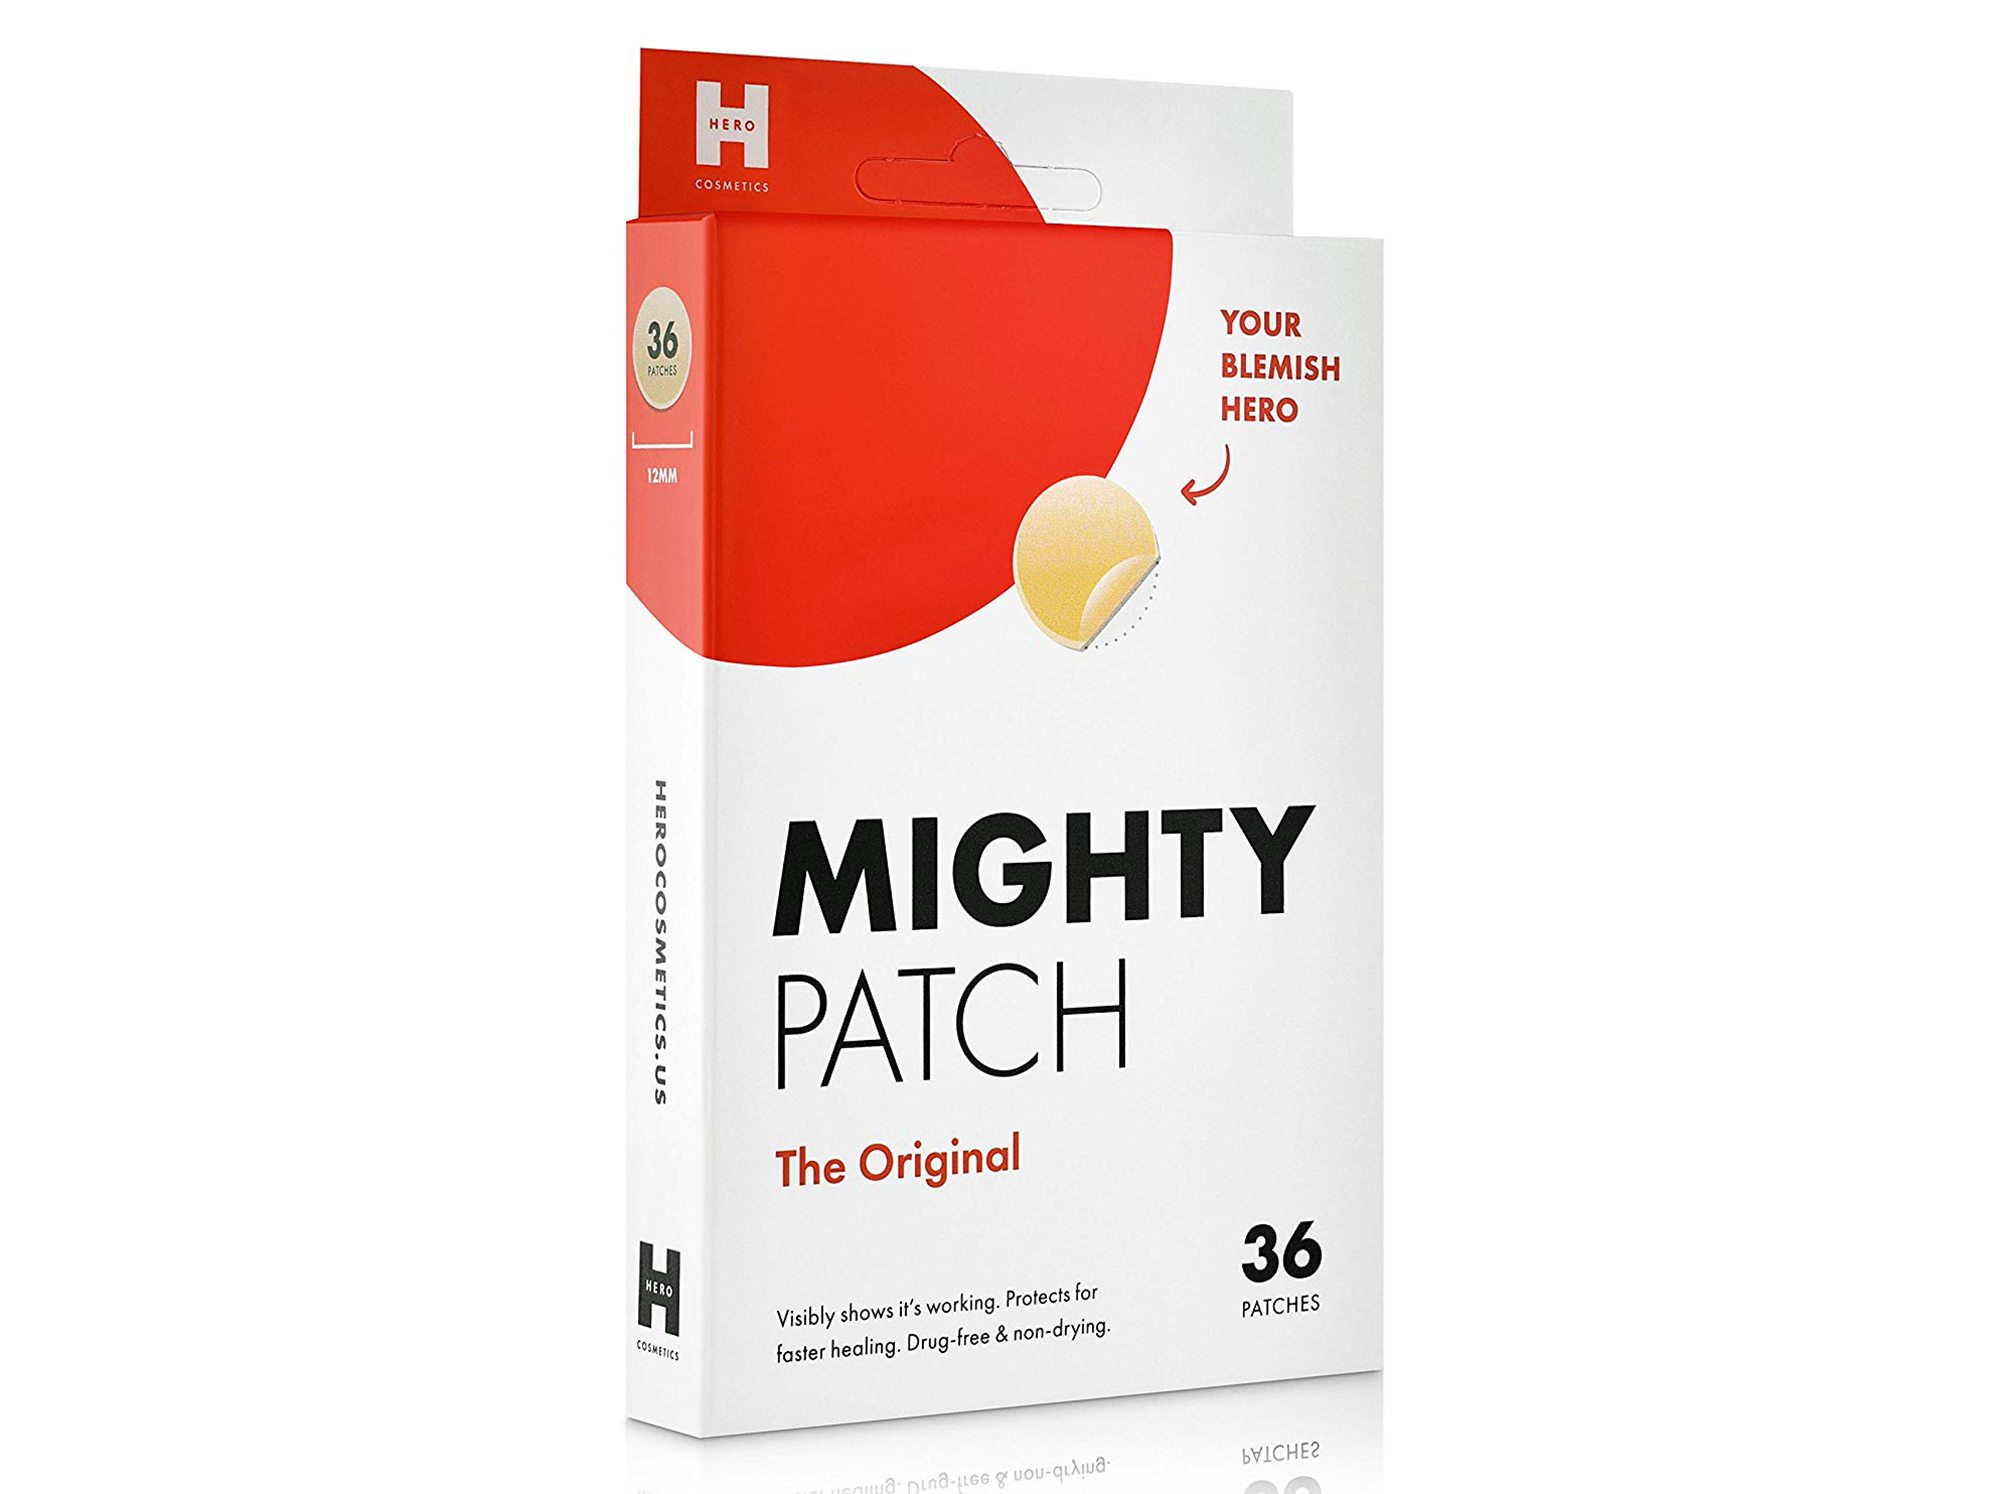 Mighty Patch Pimple Patches Amazon